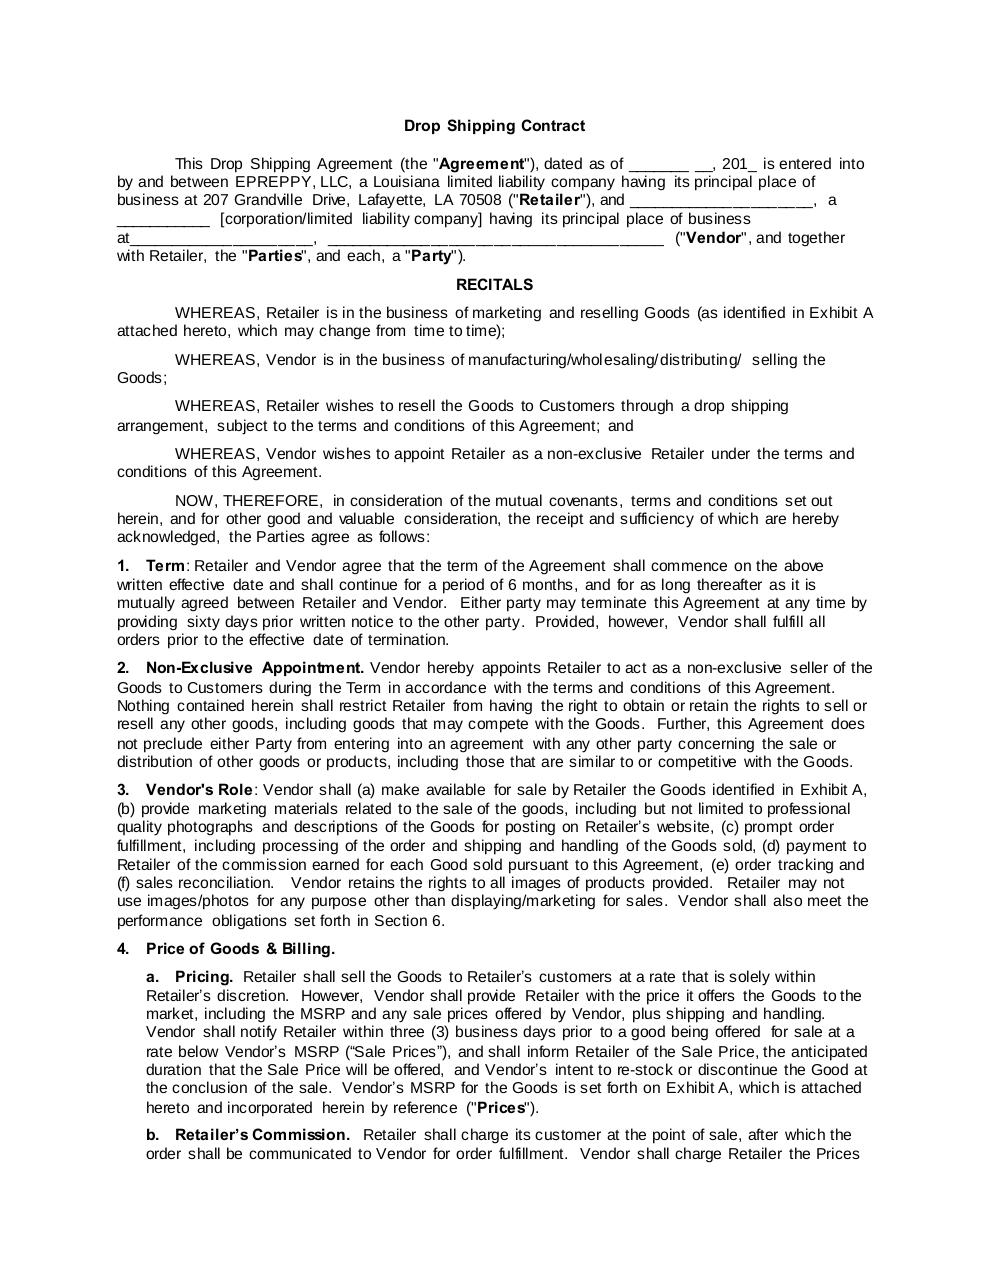 ePreppy Drop Shipping Agreement Template WORD copy.pdf - page 1/8